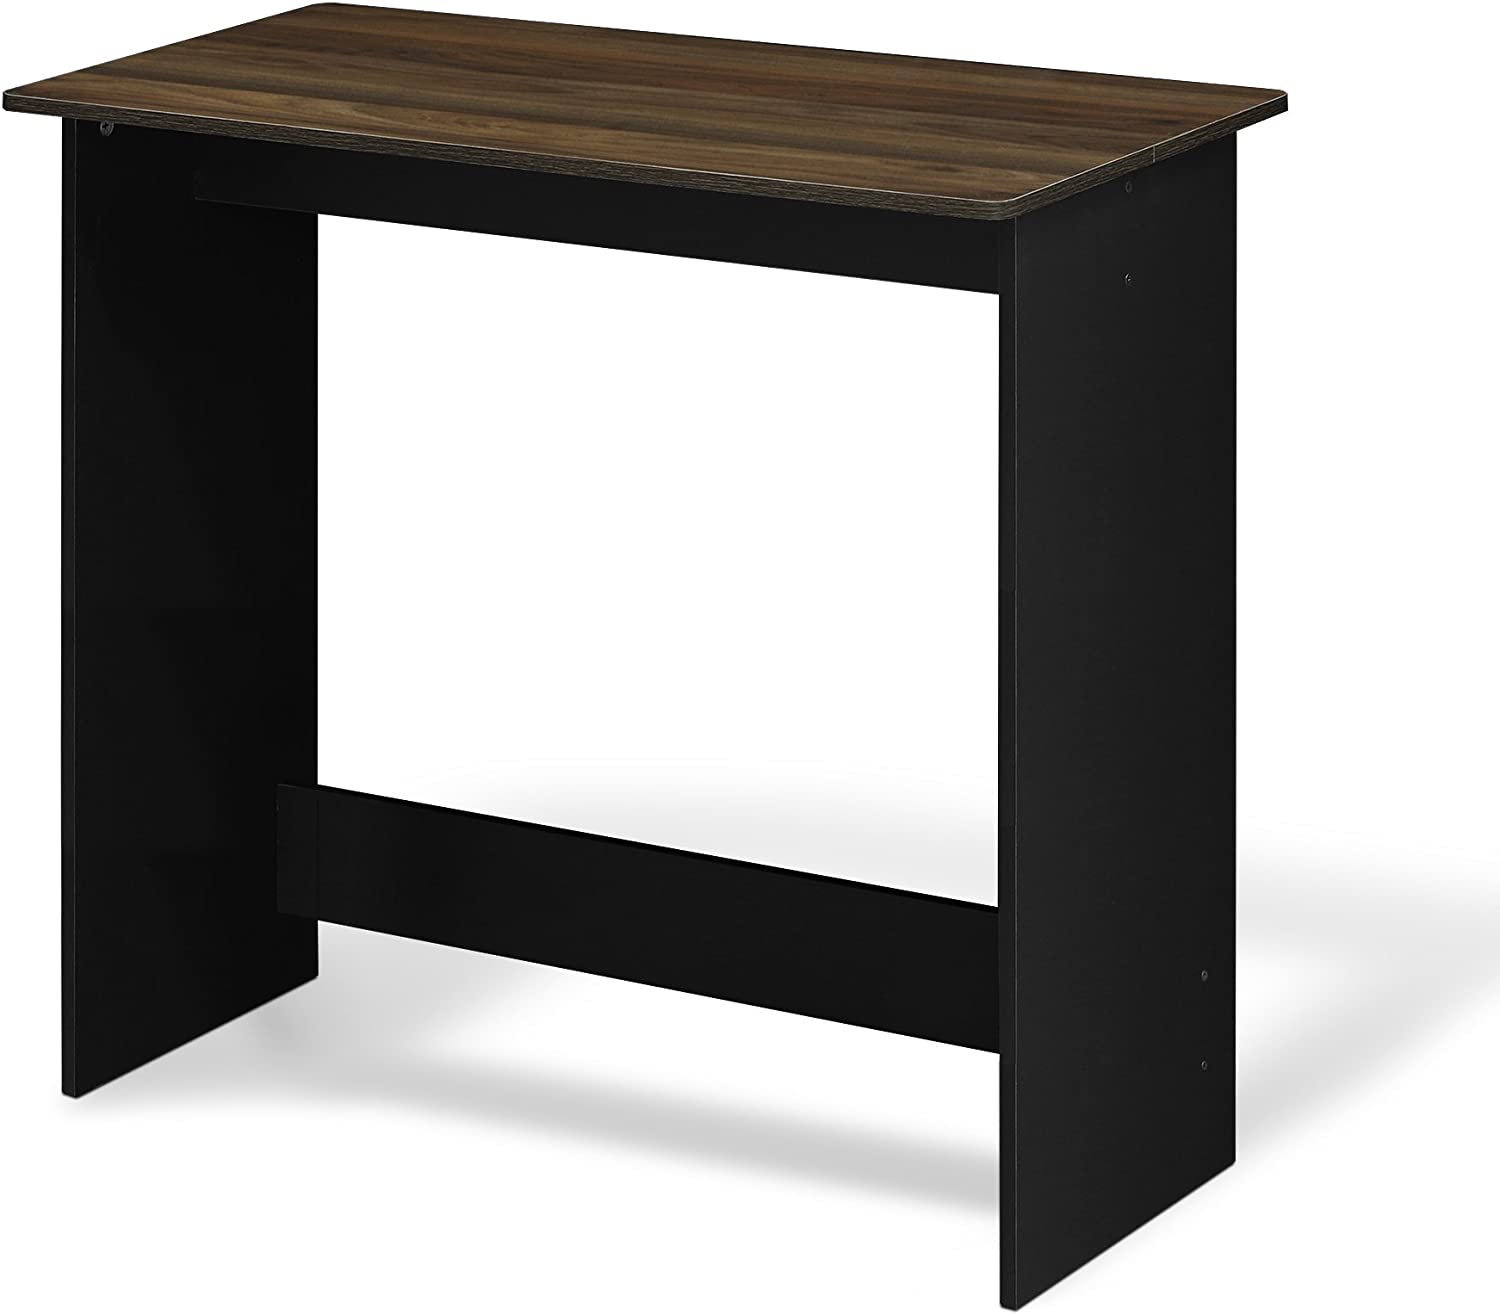 FURINNO Simplistic Study Table, Columbia Walnut